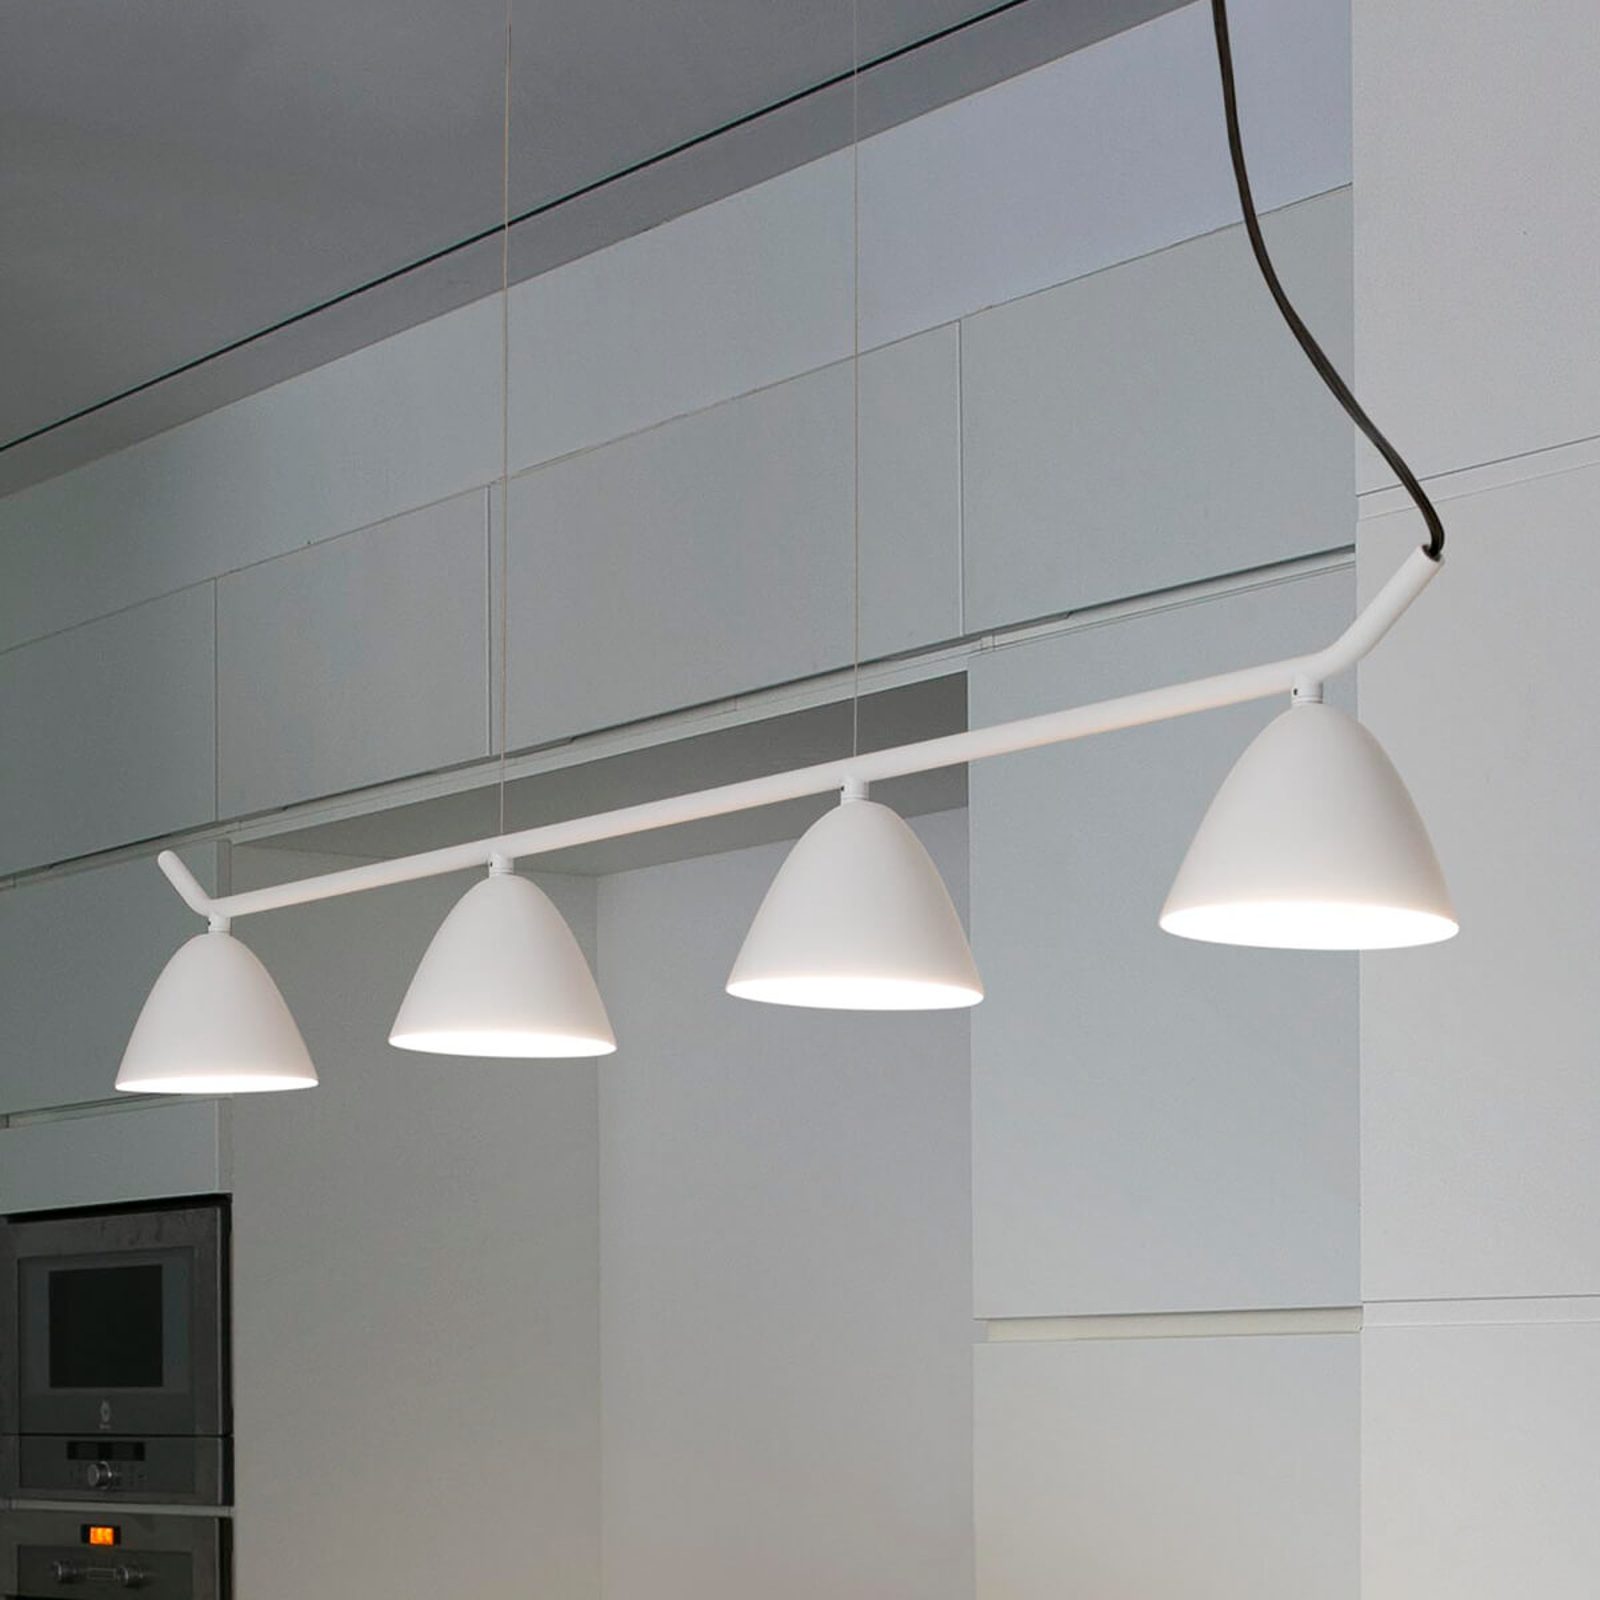 LED hanglamp Flash, wit, 4-lamps